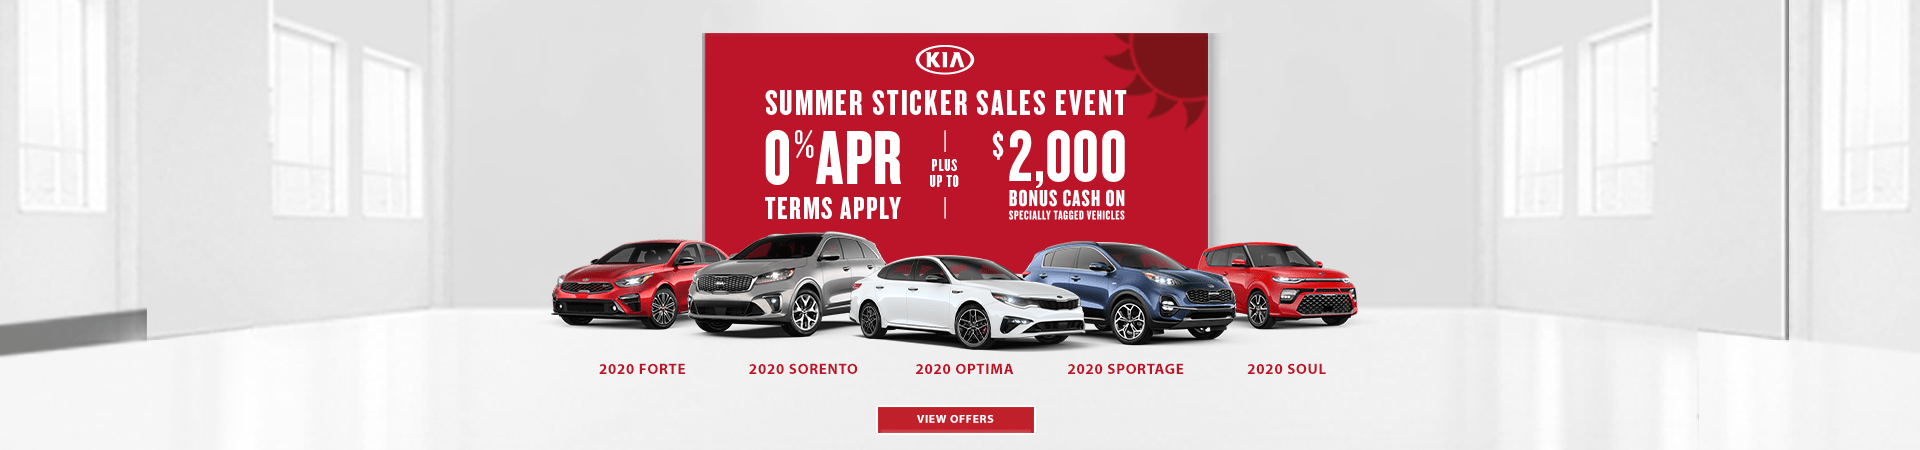 Kia Summer Sticker Sales Event Offer 202035